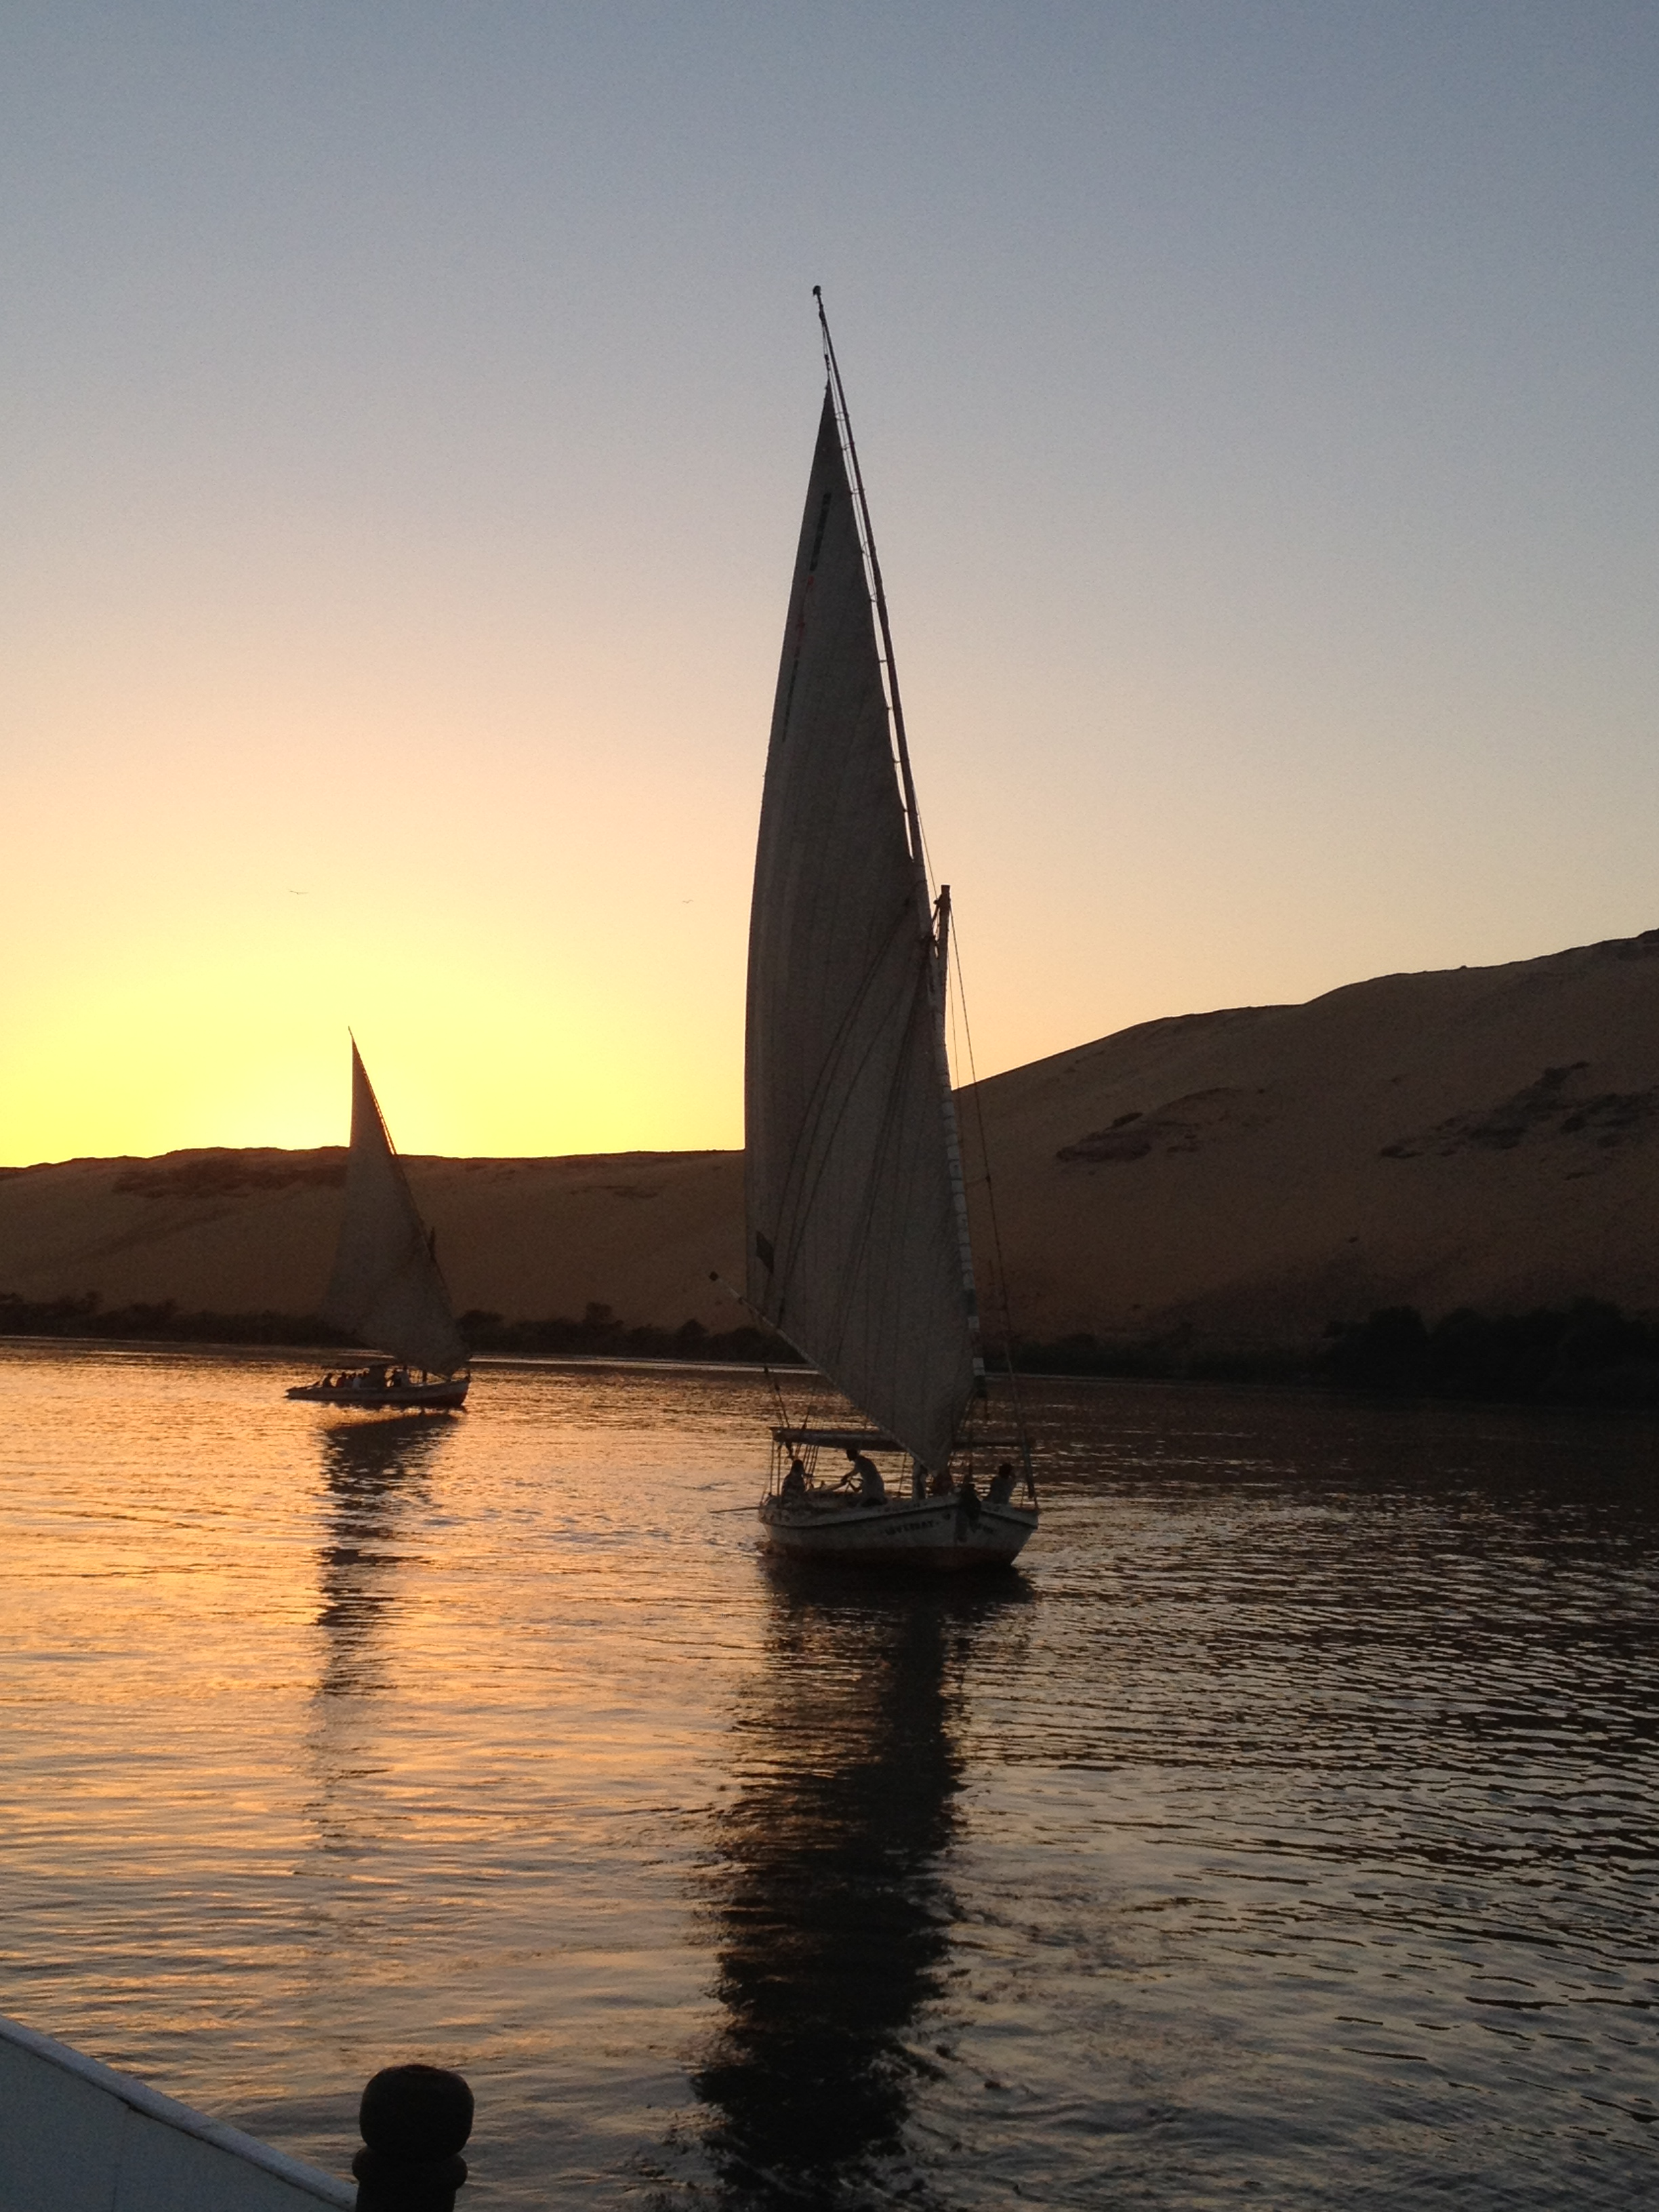 Aswan is undoubtedly one of the most beautiful places in Egypt and with no tourists and perfect weather, there is no better time to go. (Photo by of Thoraia Abou Bakr)